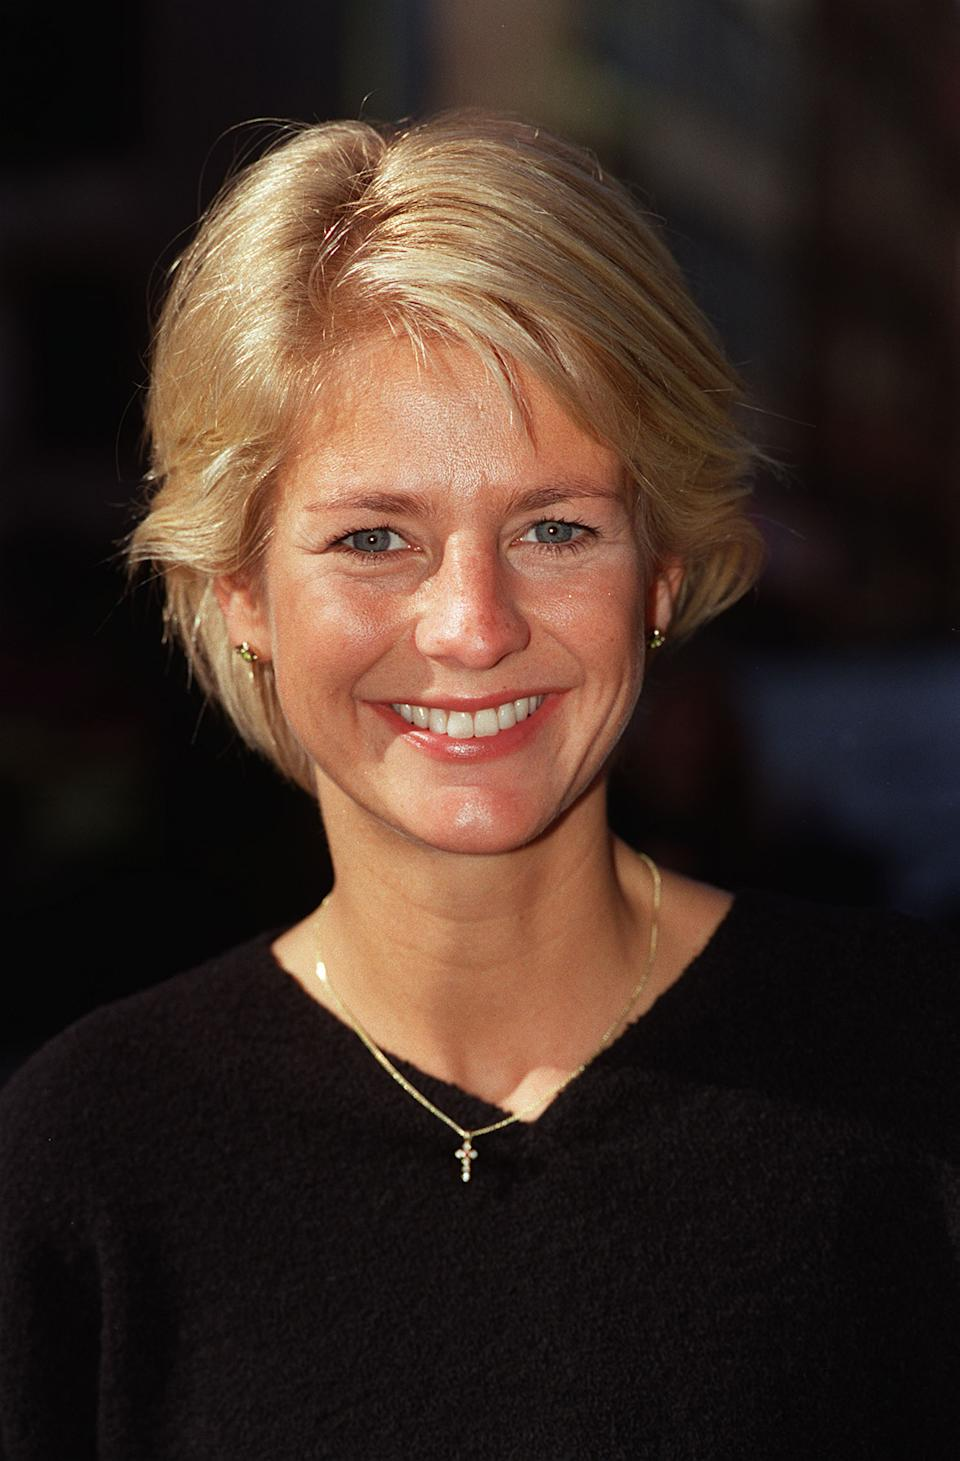 PA NEWS PHOTO 2/10/97  TV PRESENTER ULRIKA JONSSON AT A PHOTOCALL IN LONDON   (Photo by PA Images via Getty Images)